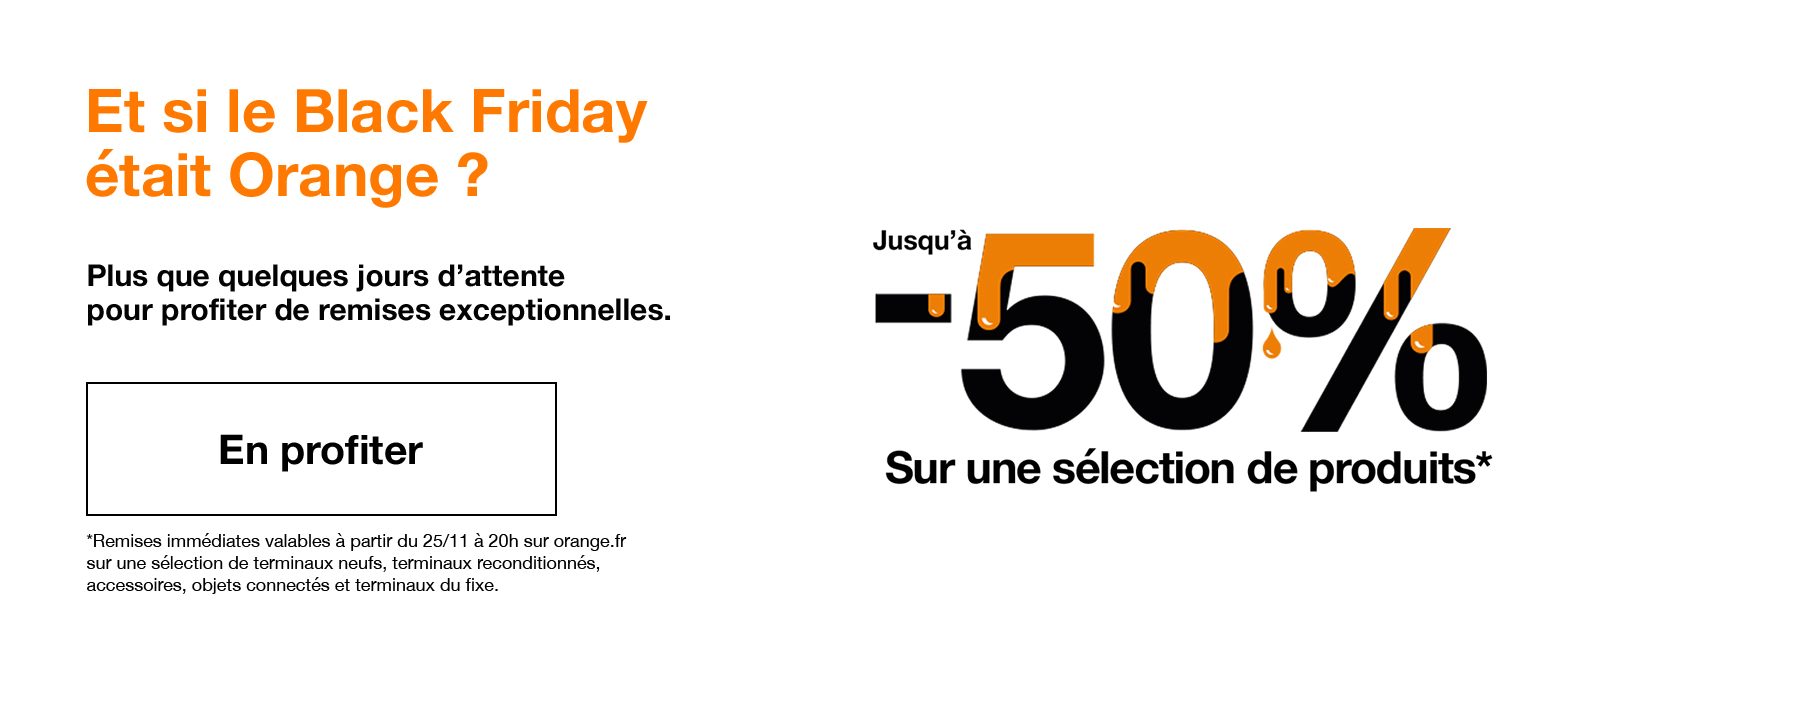 Et si le Black Friday était Orange ?